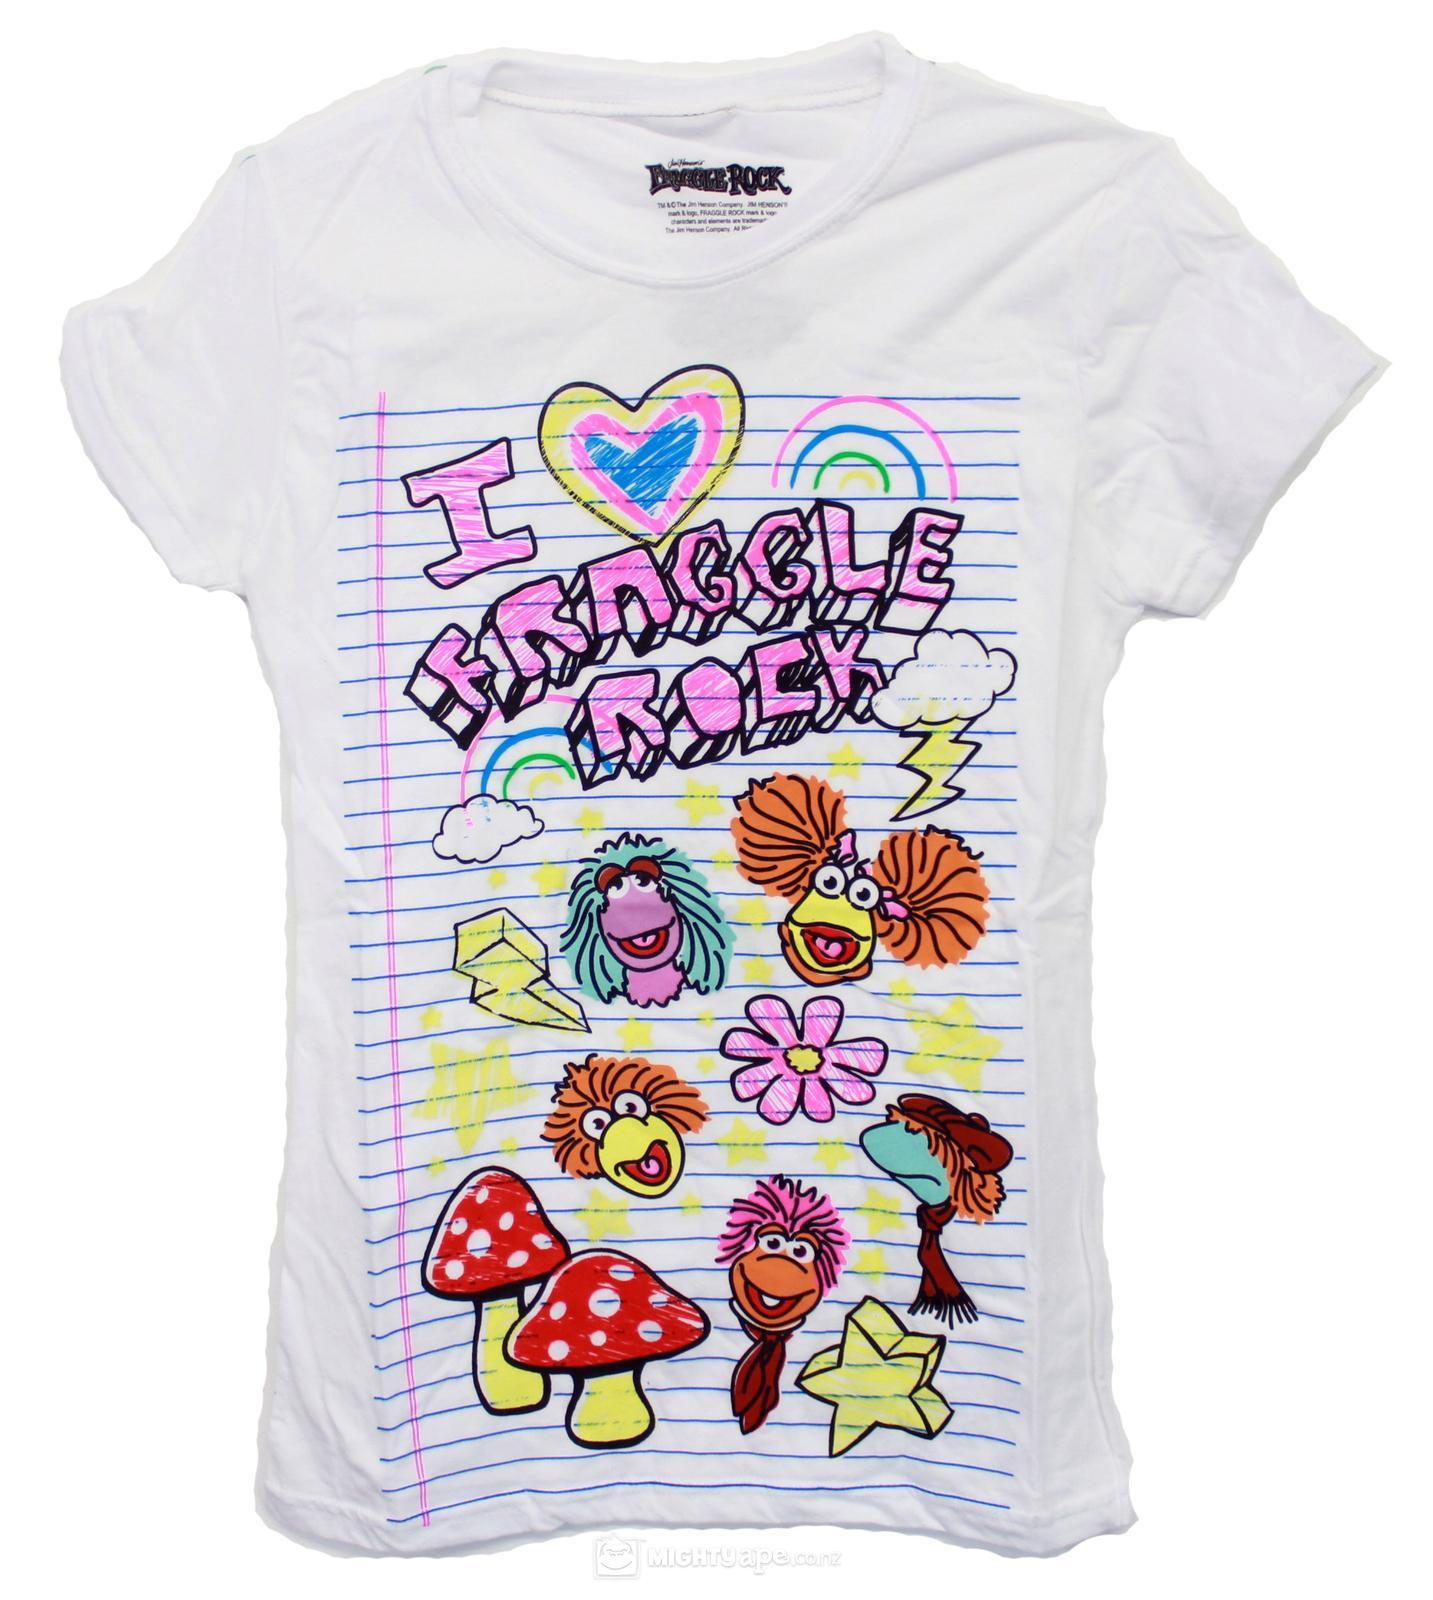 Fraggle Rock Paper Drawn Girl's T-Shirt (Medium)